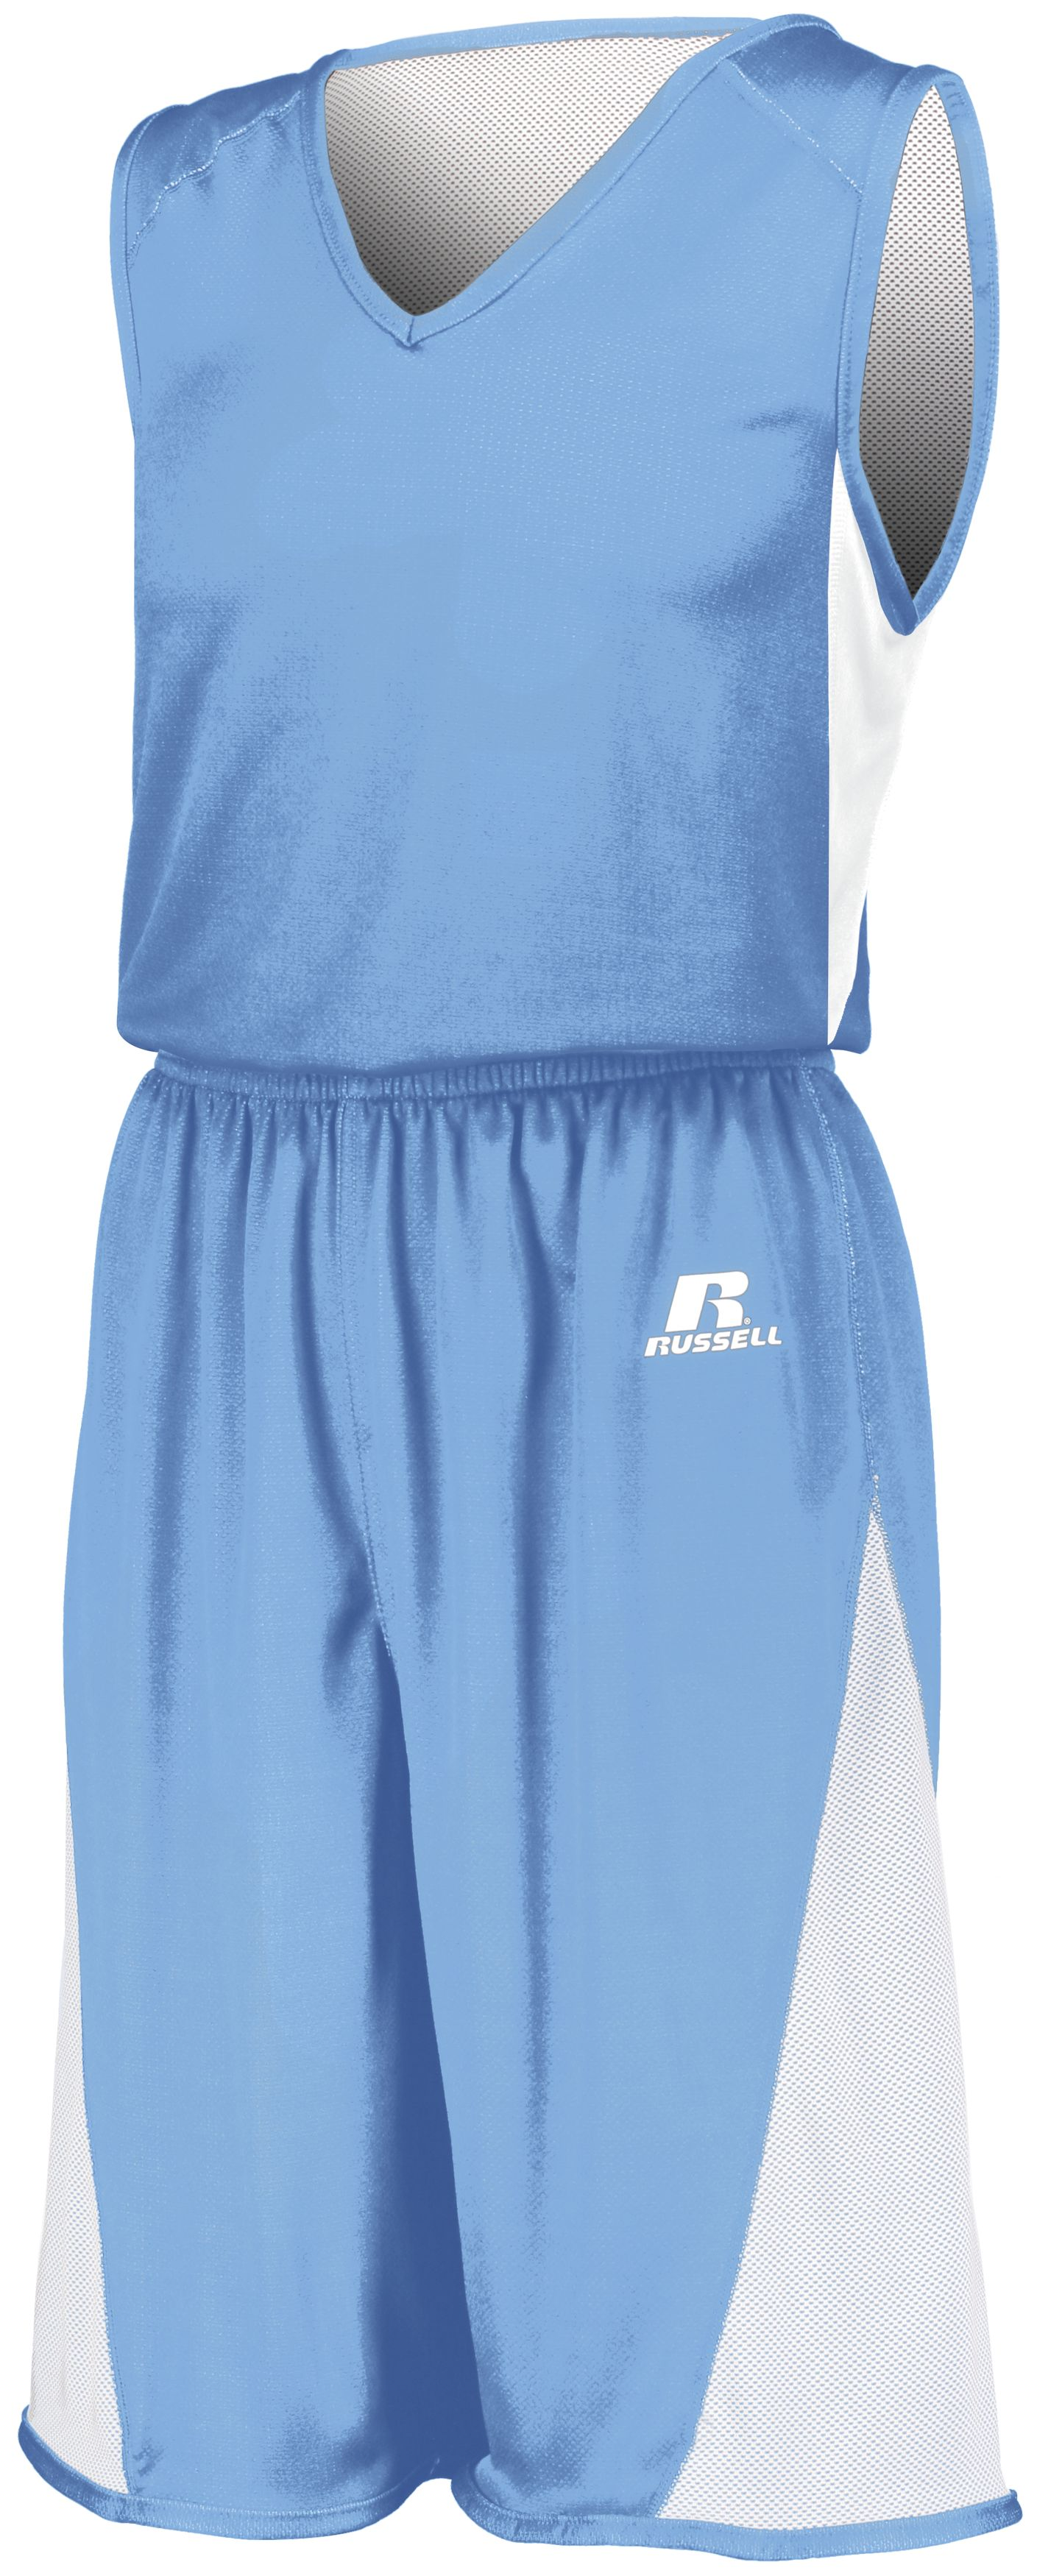 Undivided Single Ply Reversible Jersey - COLUMBIA BLUE/WHITE